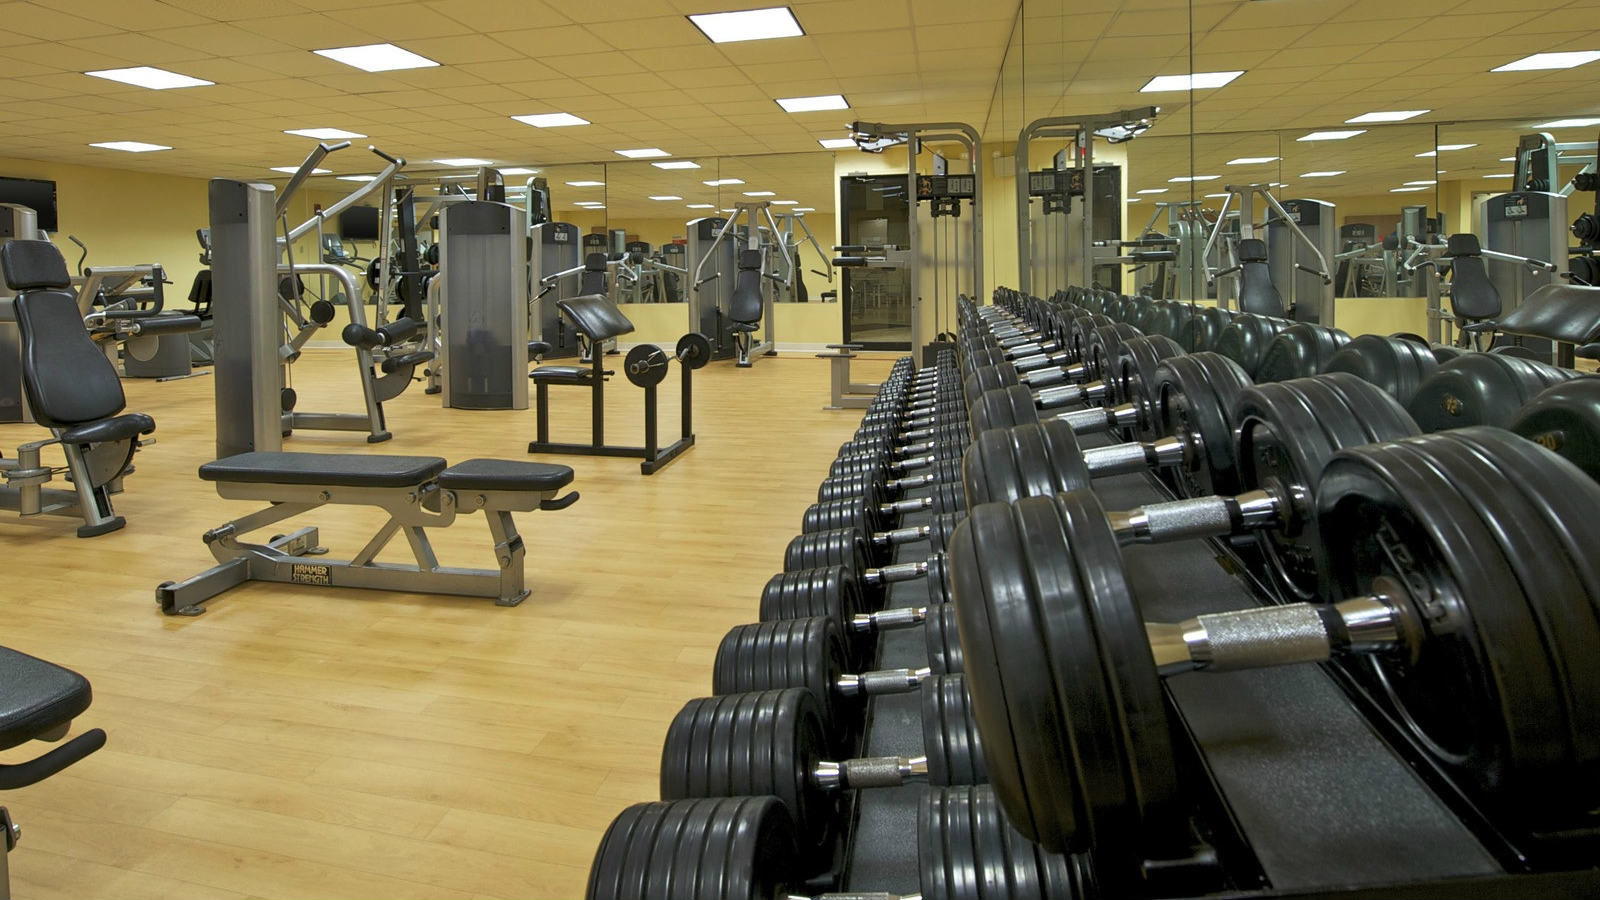 Sheraton Bucks County Hotel - Fitness Center